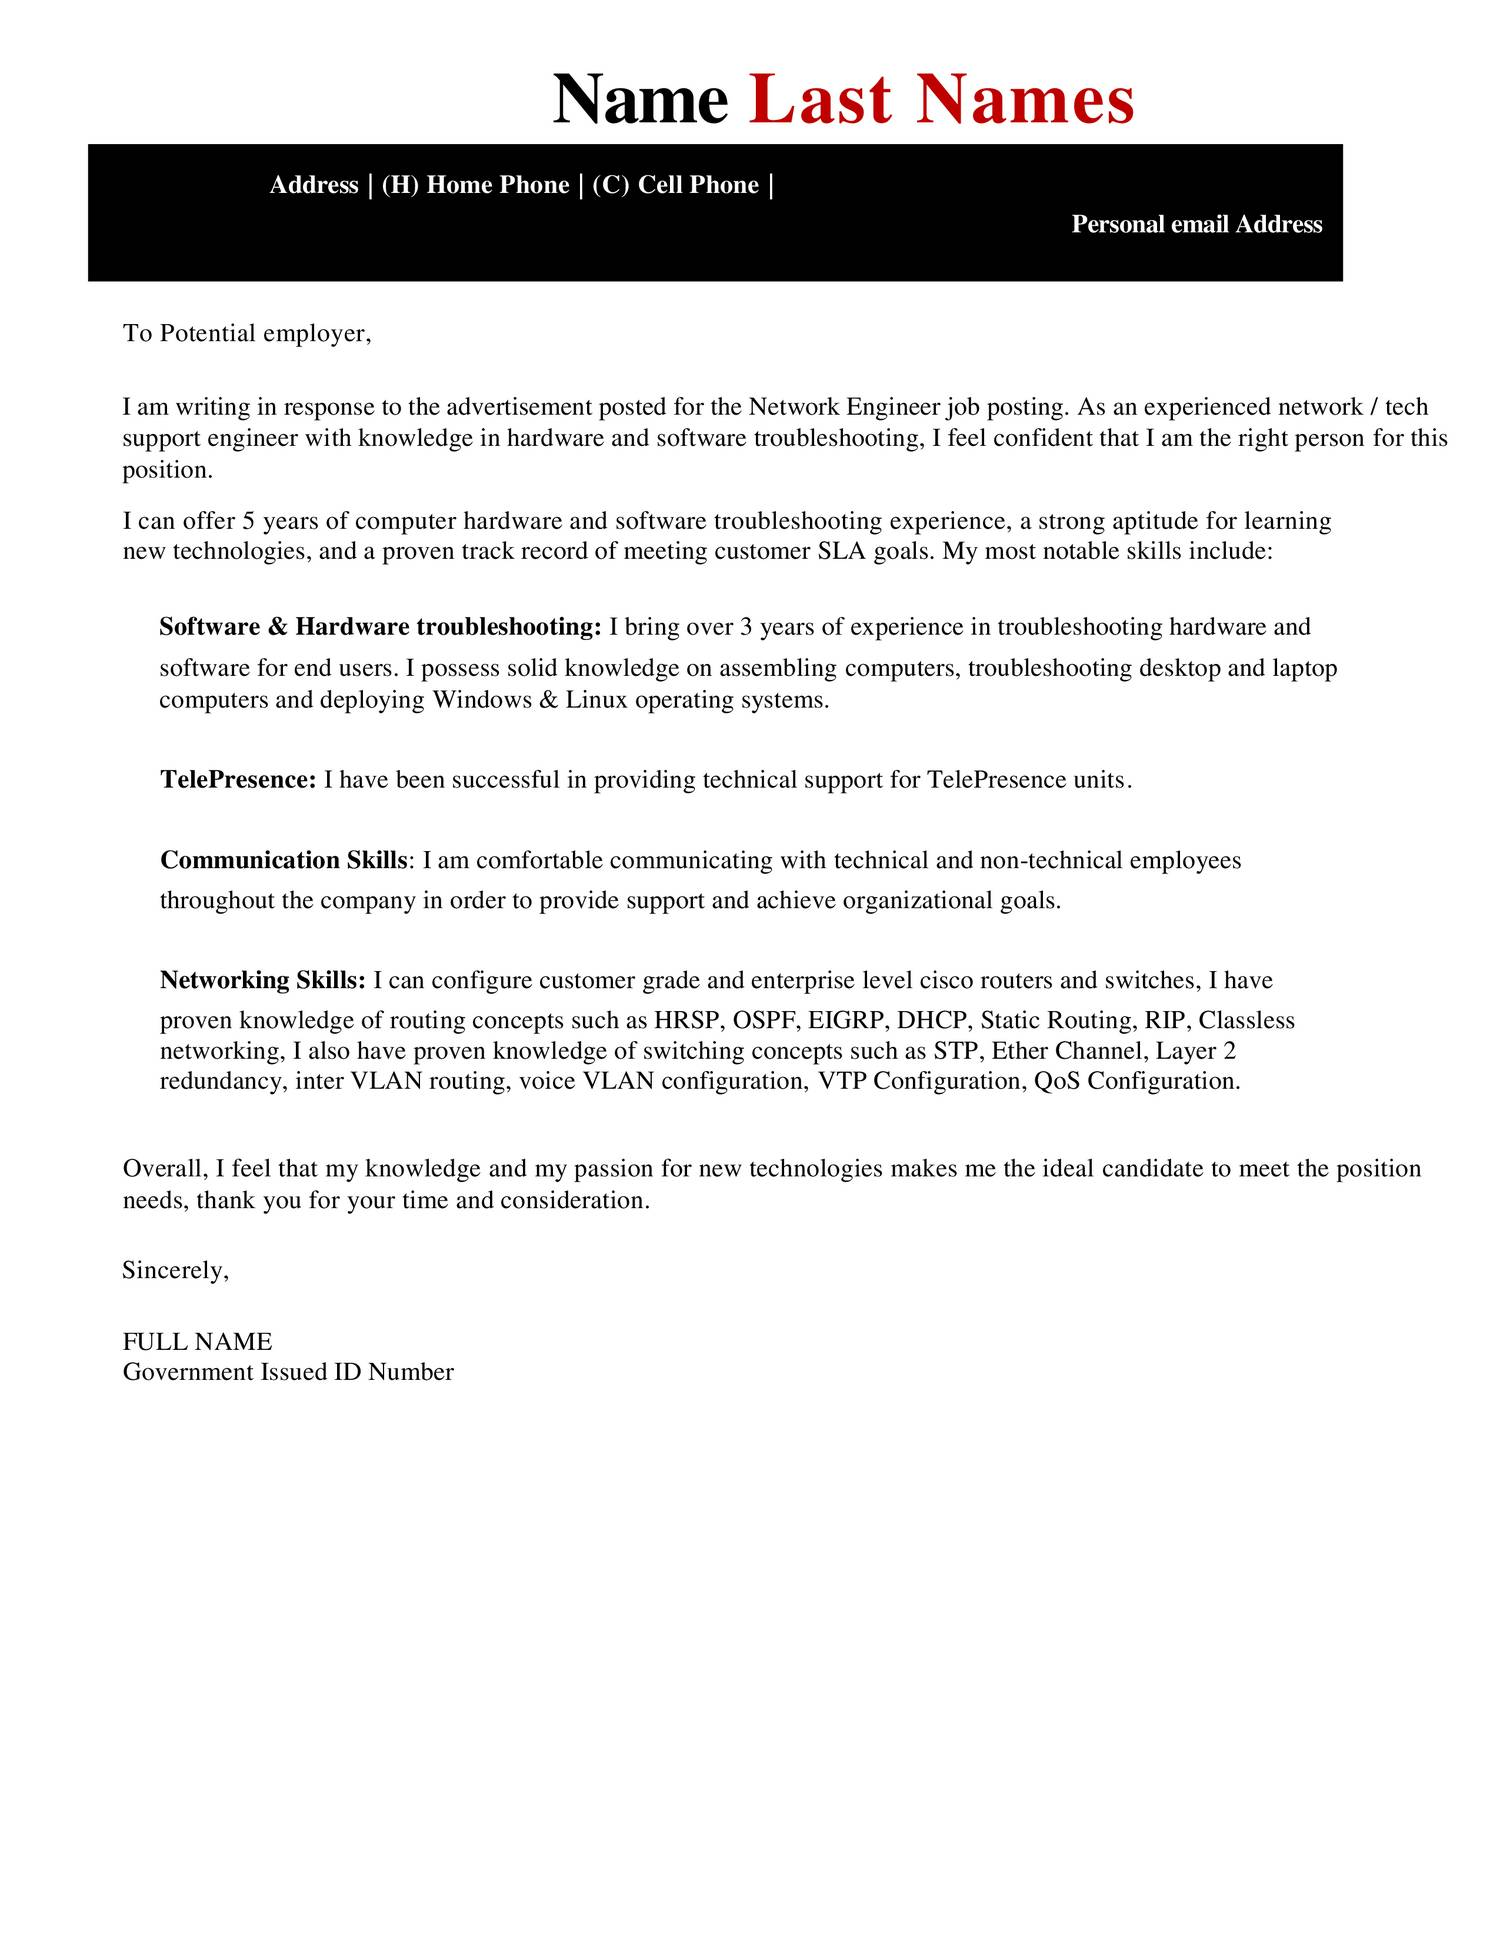 Cover Letter For Network Engineer Gallery - Cover Letter Ideas